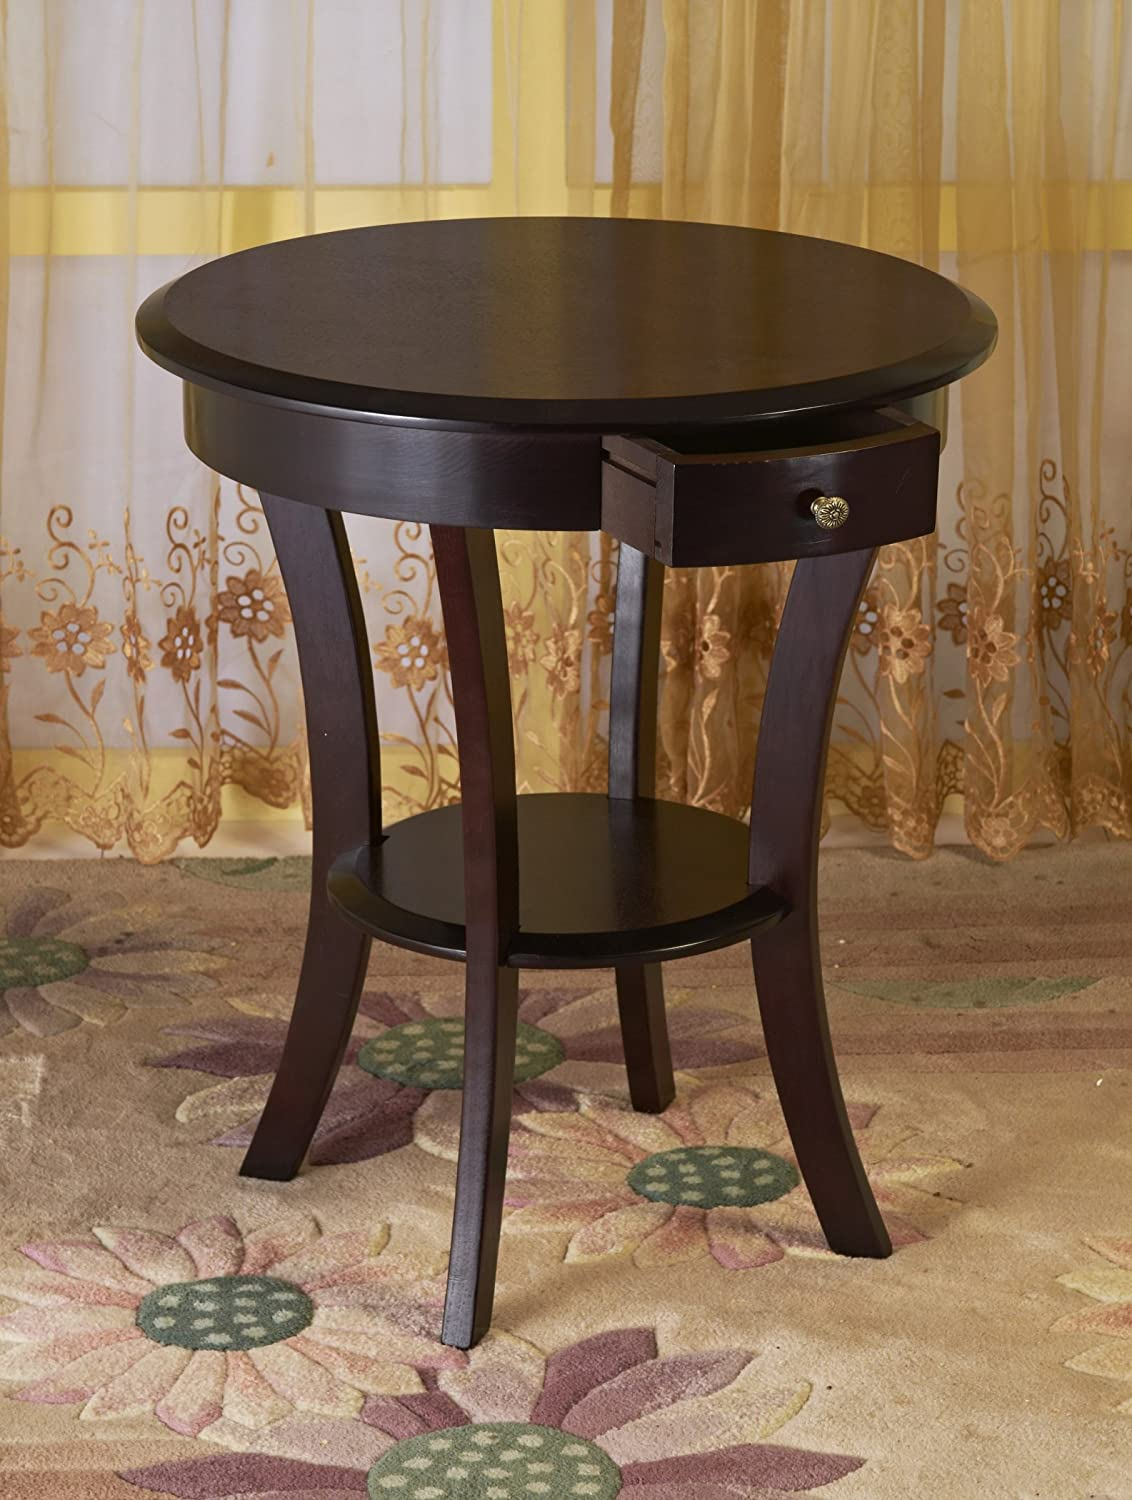 Frenchi Home Furnishing Wood Round Side Accent Table, Two Shelves, Espresso MH302